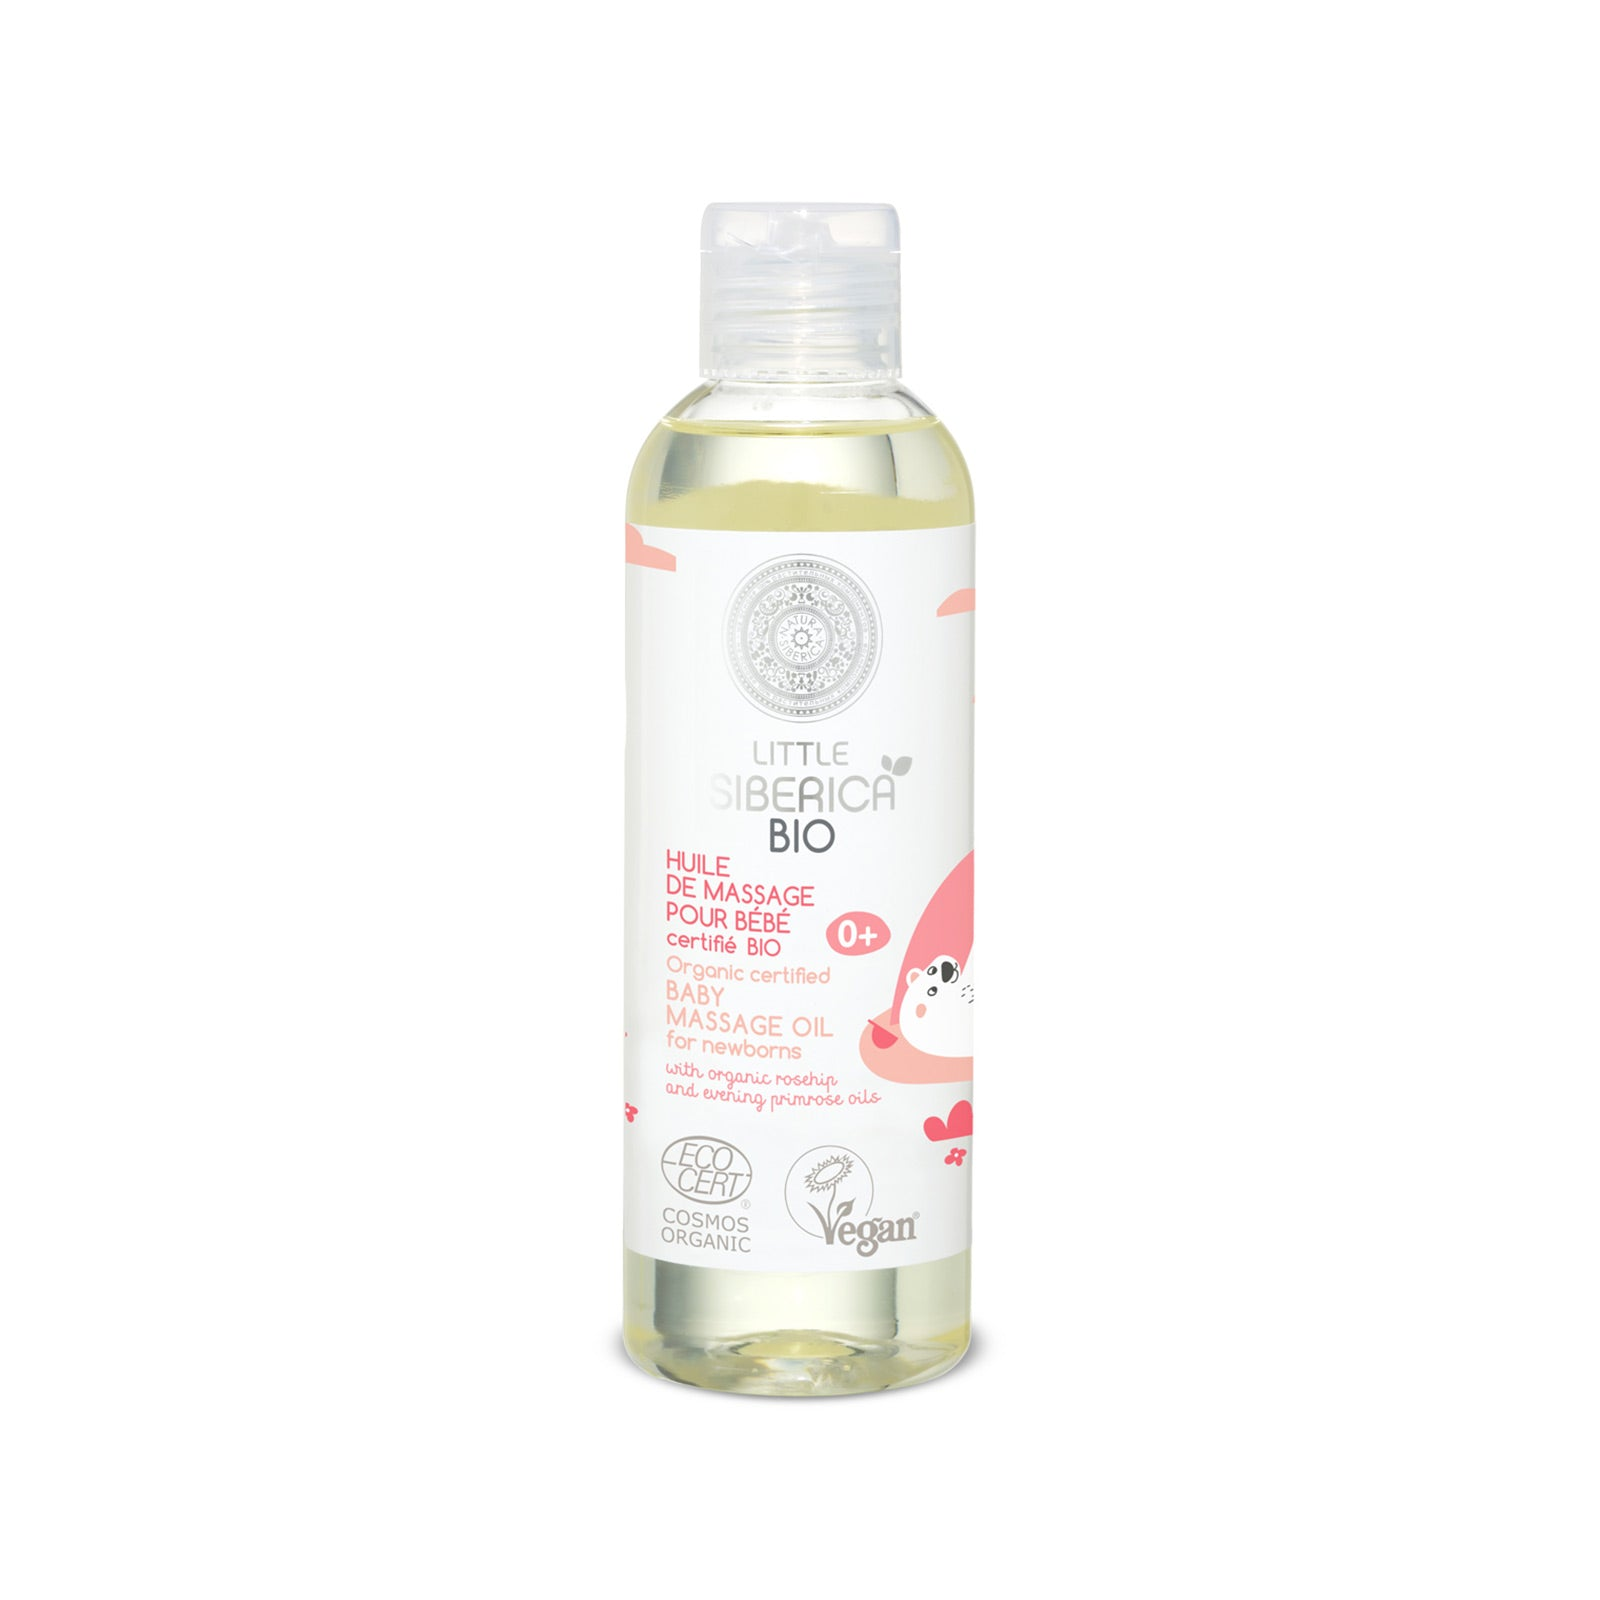 Organic certified Baby massage oil for newborns, 200 ml